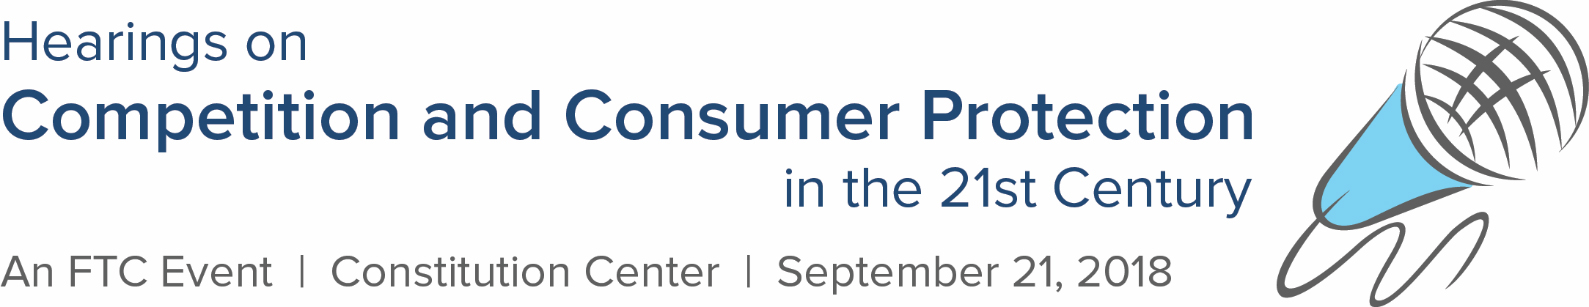 FTC Hearing #2: Competition and Consumer Protection in the 21st Century